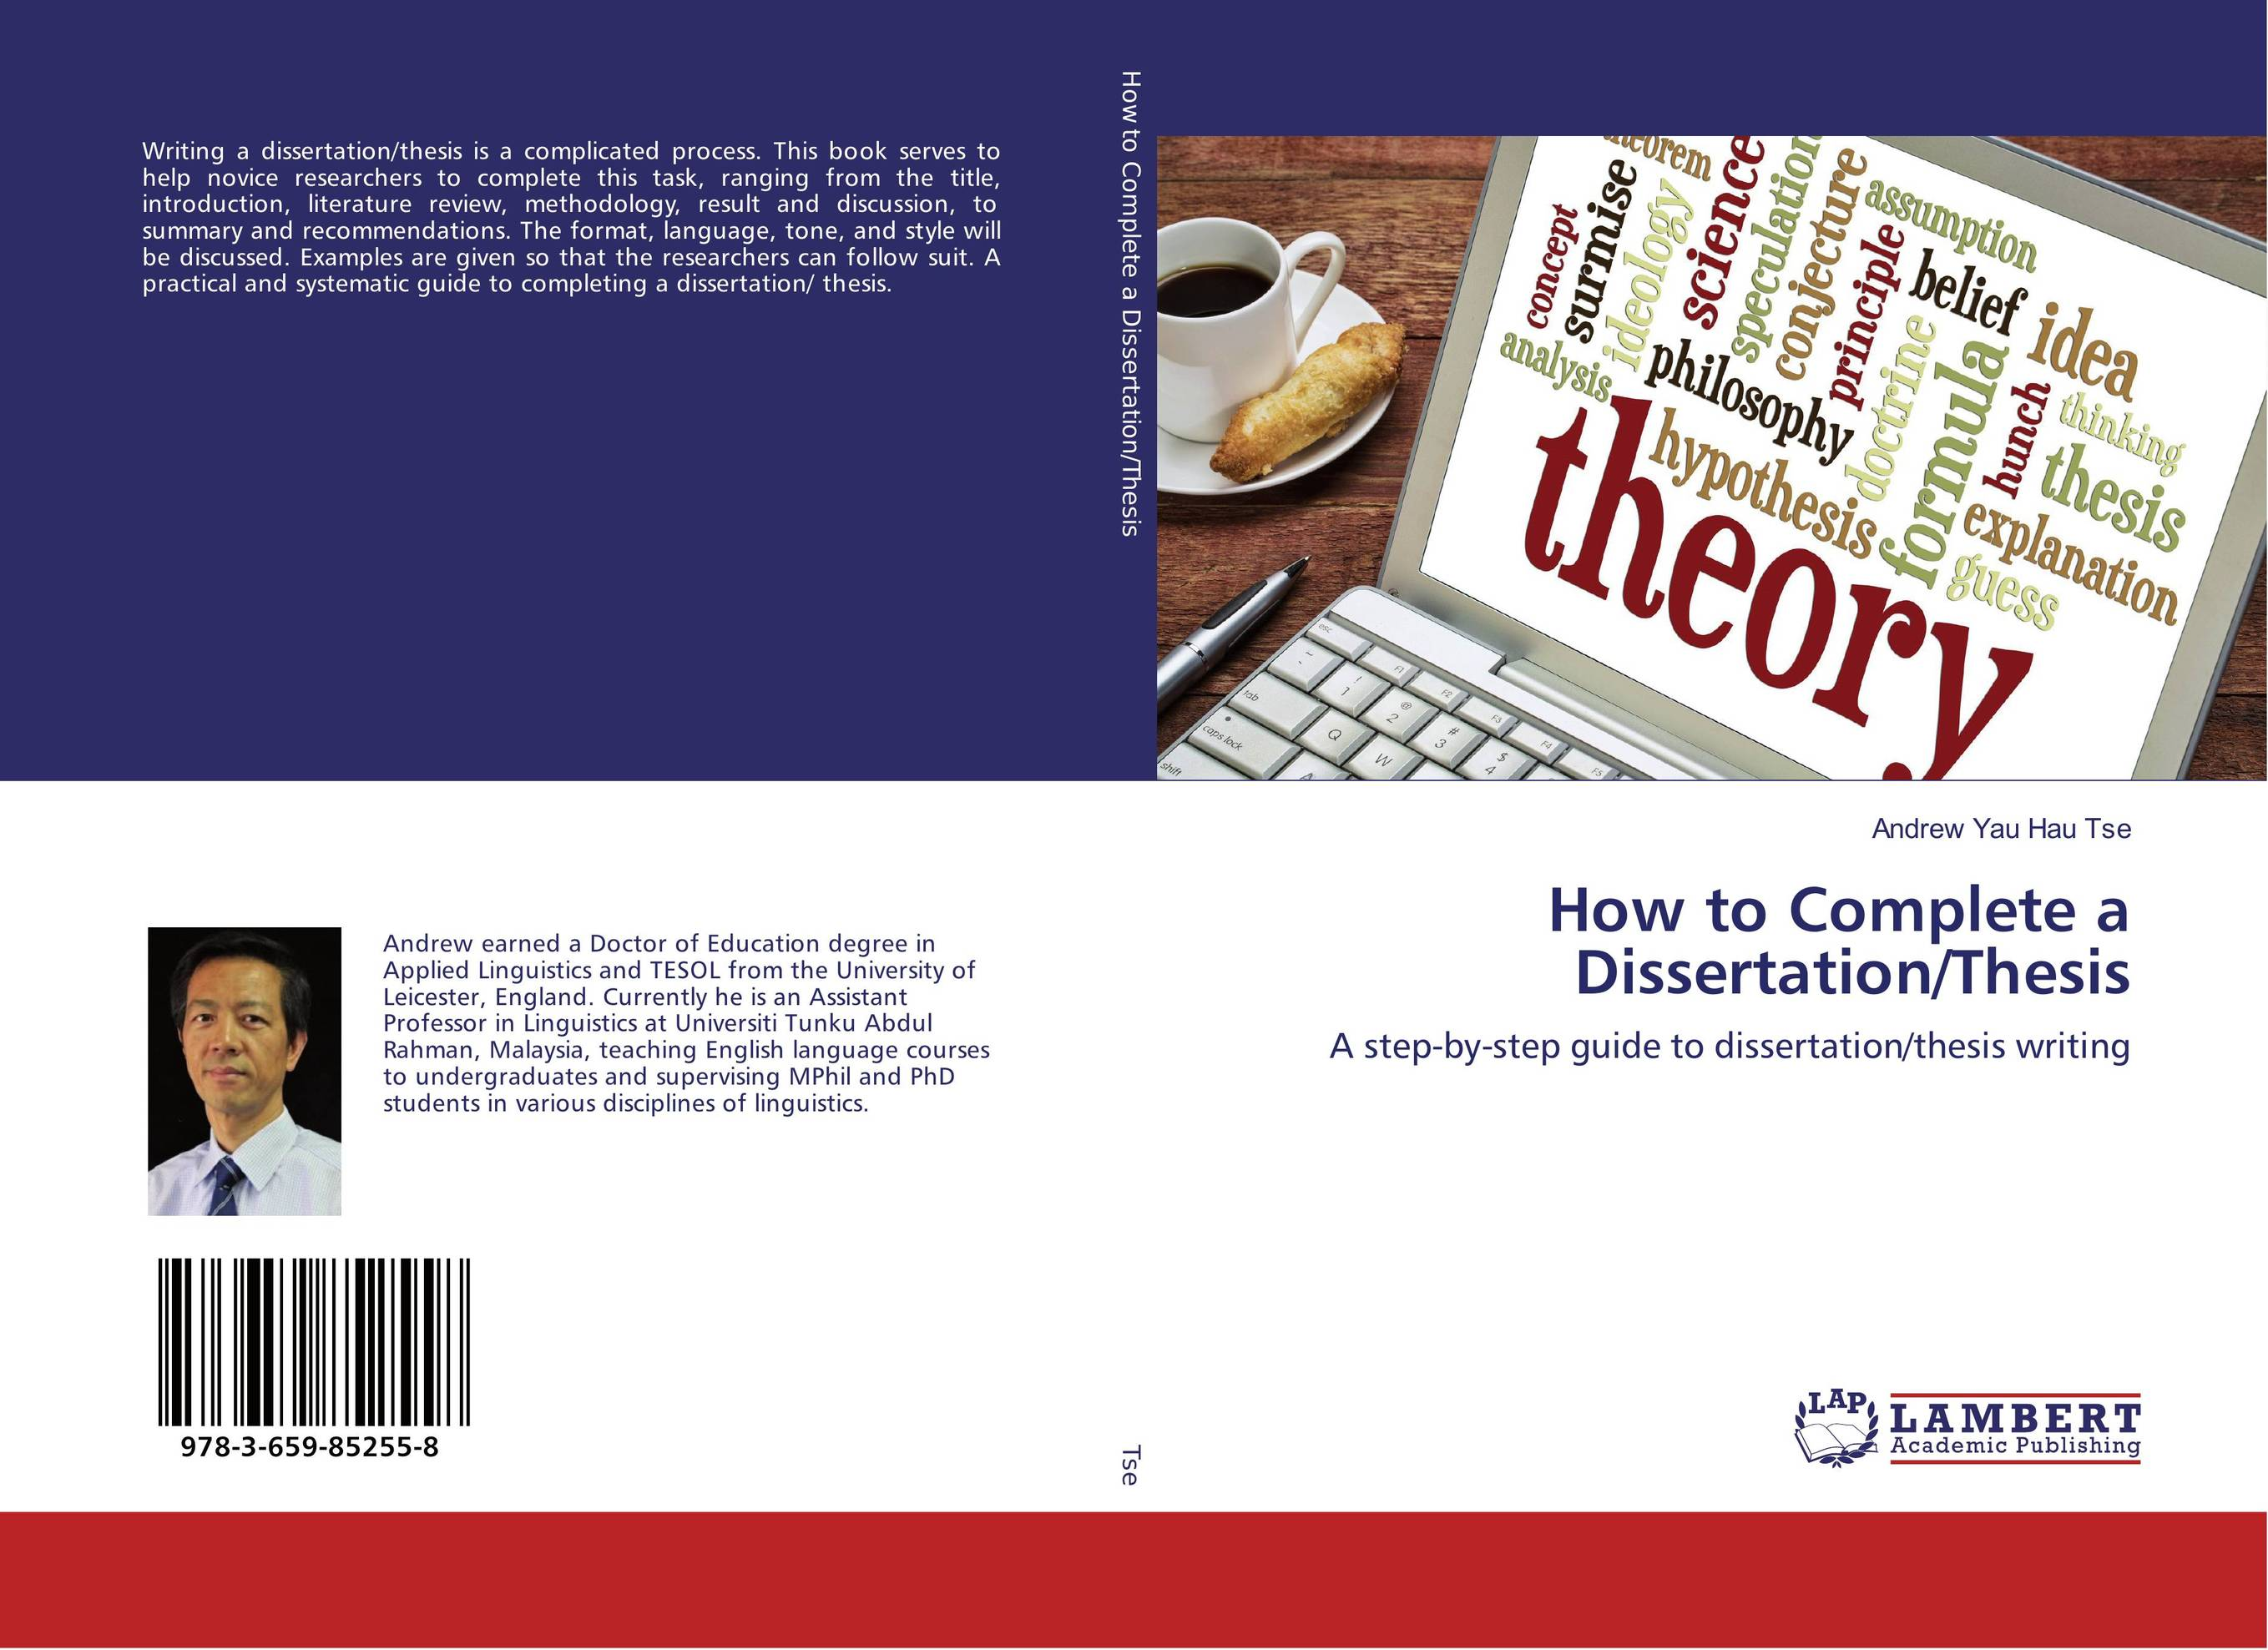 How to Complete a Dissertation/Thesis